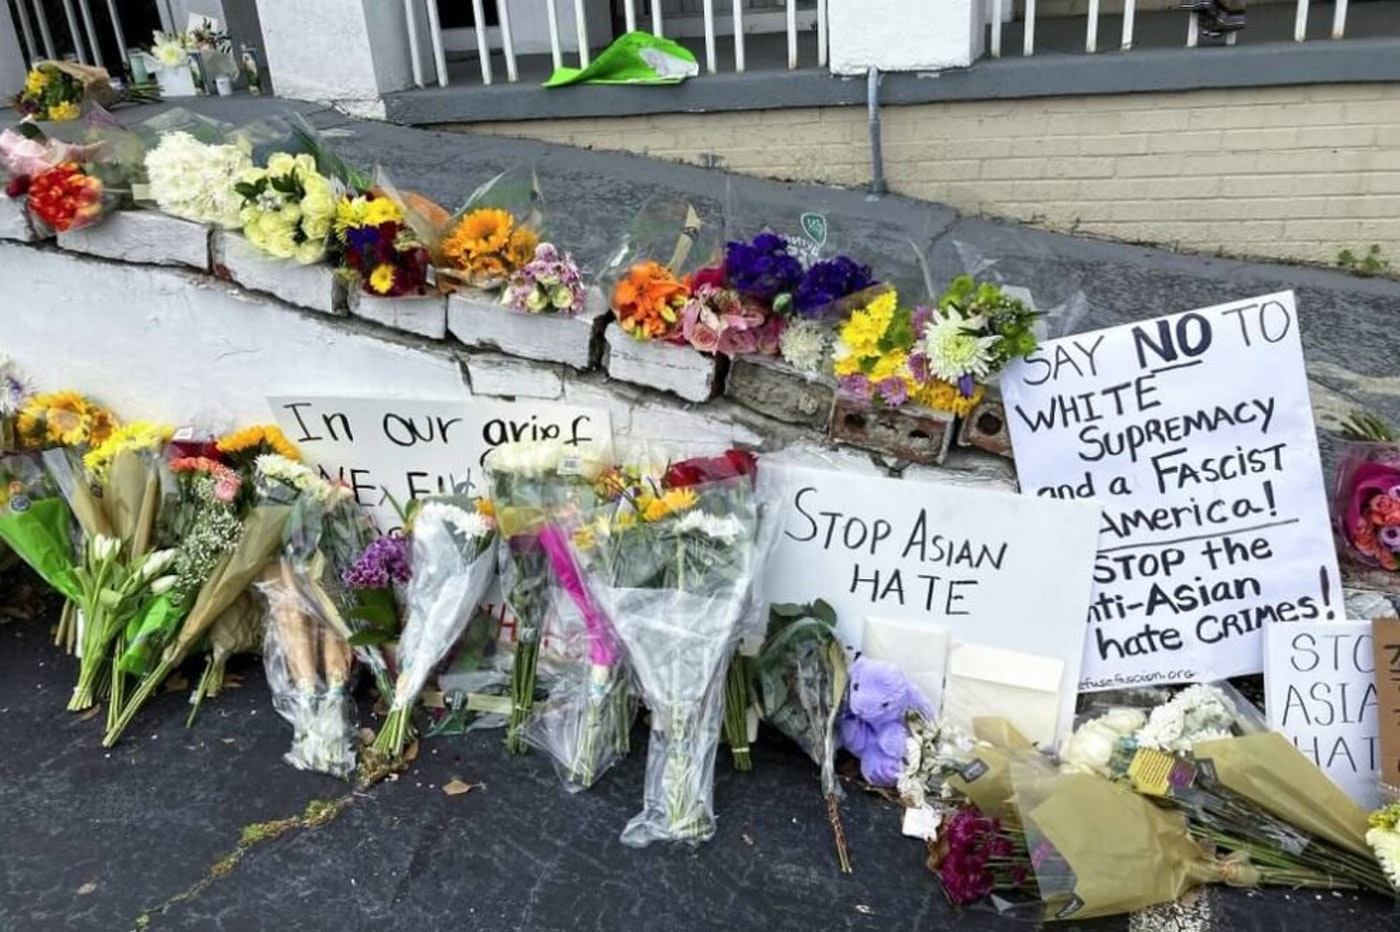 FILE - In this March 19, 2021, file photo, flowers, candles and signs are displayed at a makeshift memorial in Atlanta. A deadly rampage at three Georgia massage businesses, where the employees were mostly of Asian descent, has prompted Asian American women to openly share stories of being sexually harassed or demeaned based on their race. (AP Photo/Candice Choi, File)